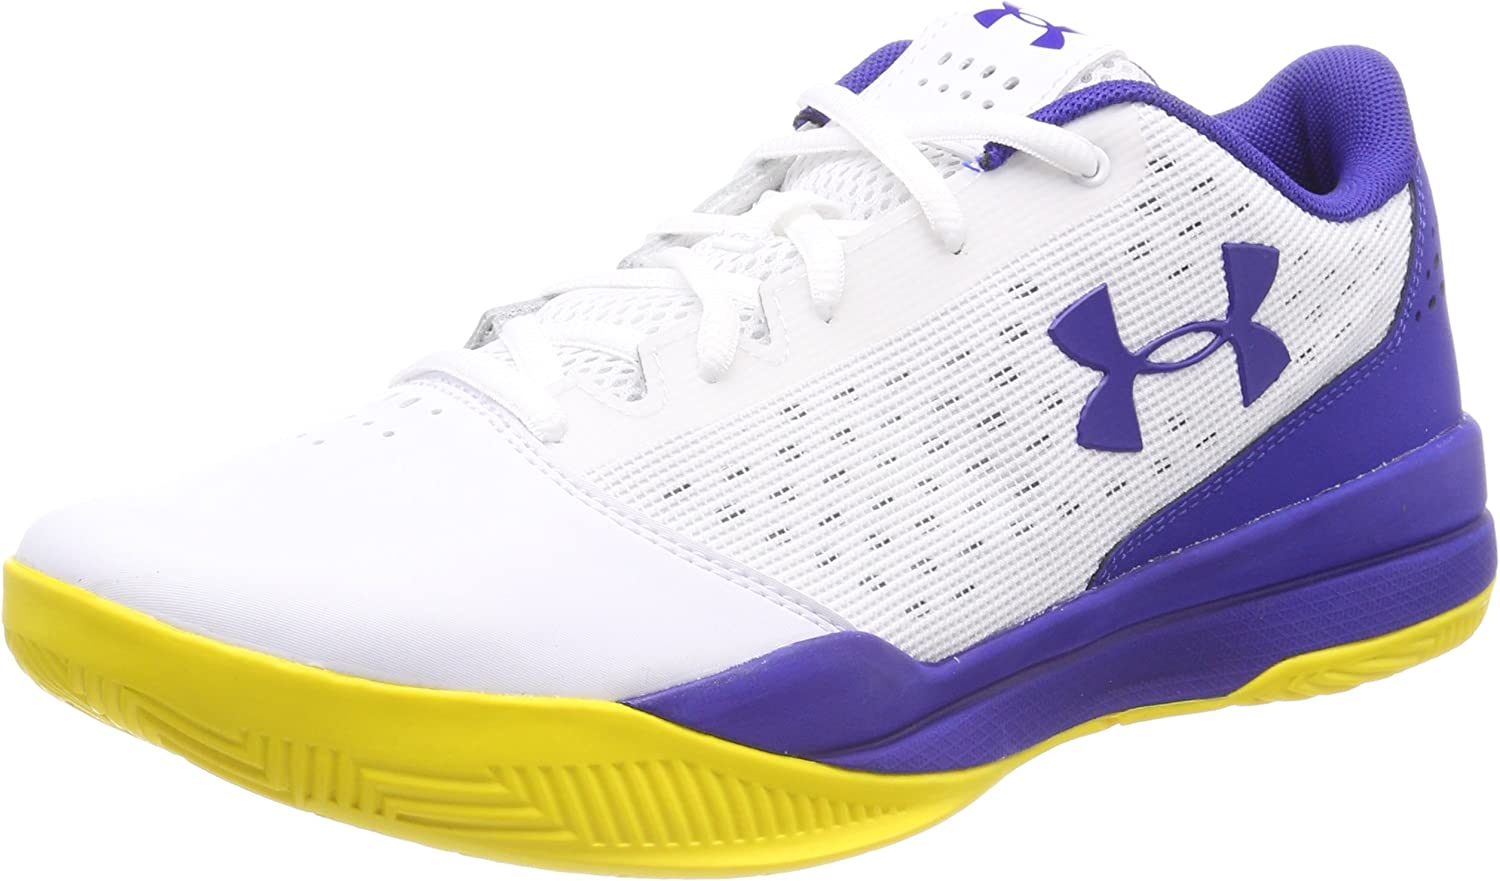 gancho Cósmico Evento  Under Armour Men's Jet Low Basketball Shoes, Men's Men's Basketball Shoes:  Amazon.co.uk: Shoes & Bags